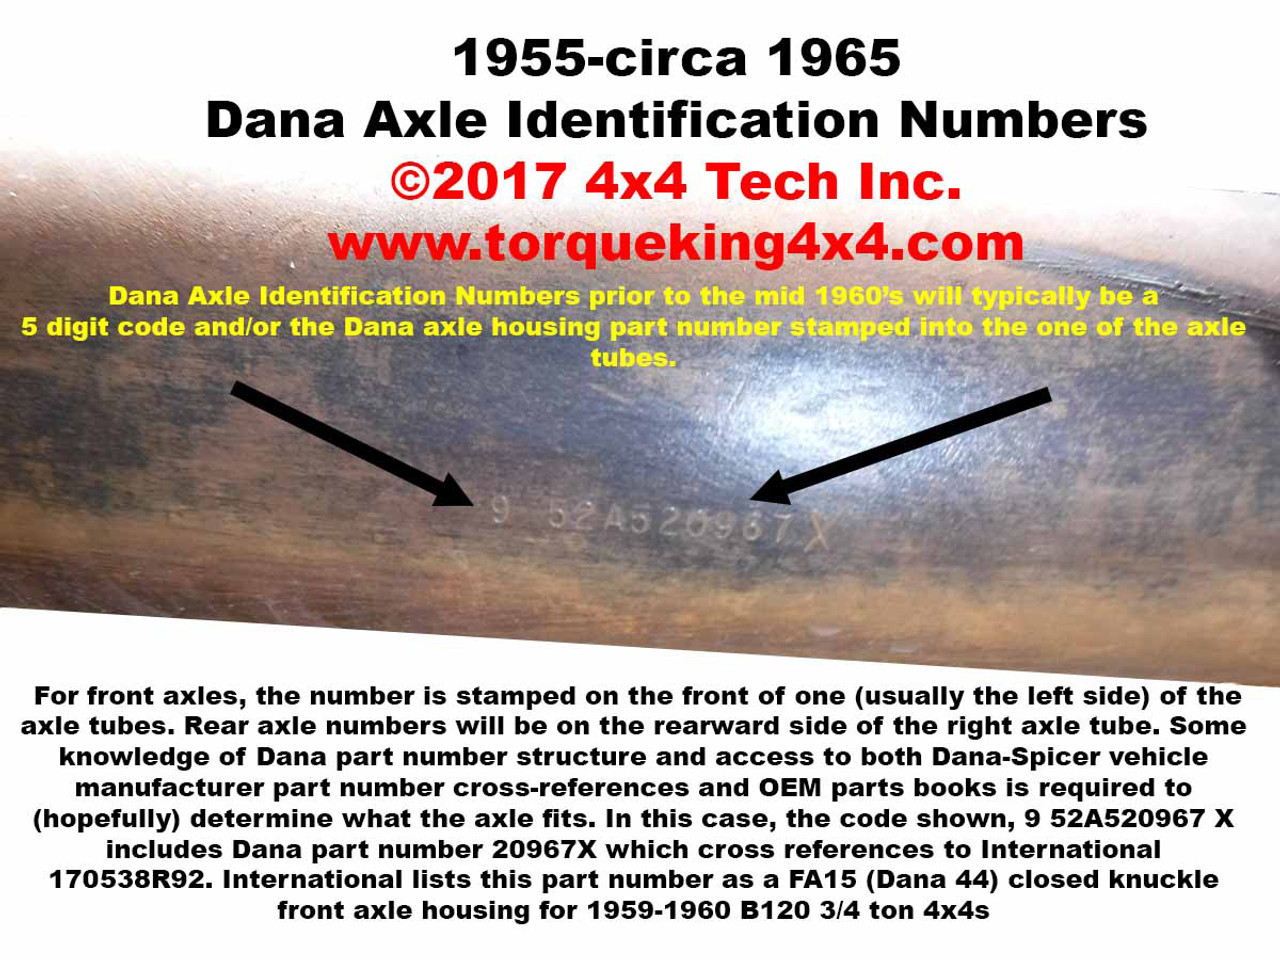 Id A Jeep Dana Axle By Code Or Bom Number 1964 Ford Rear End Codes And Build Tags Idn 130